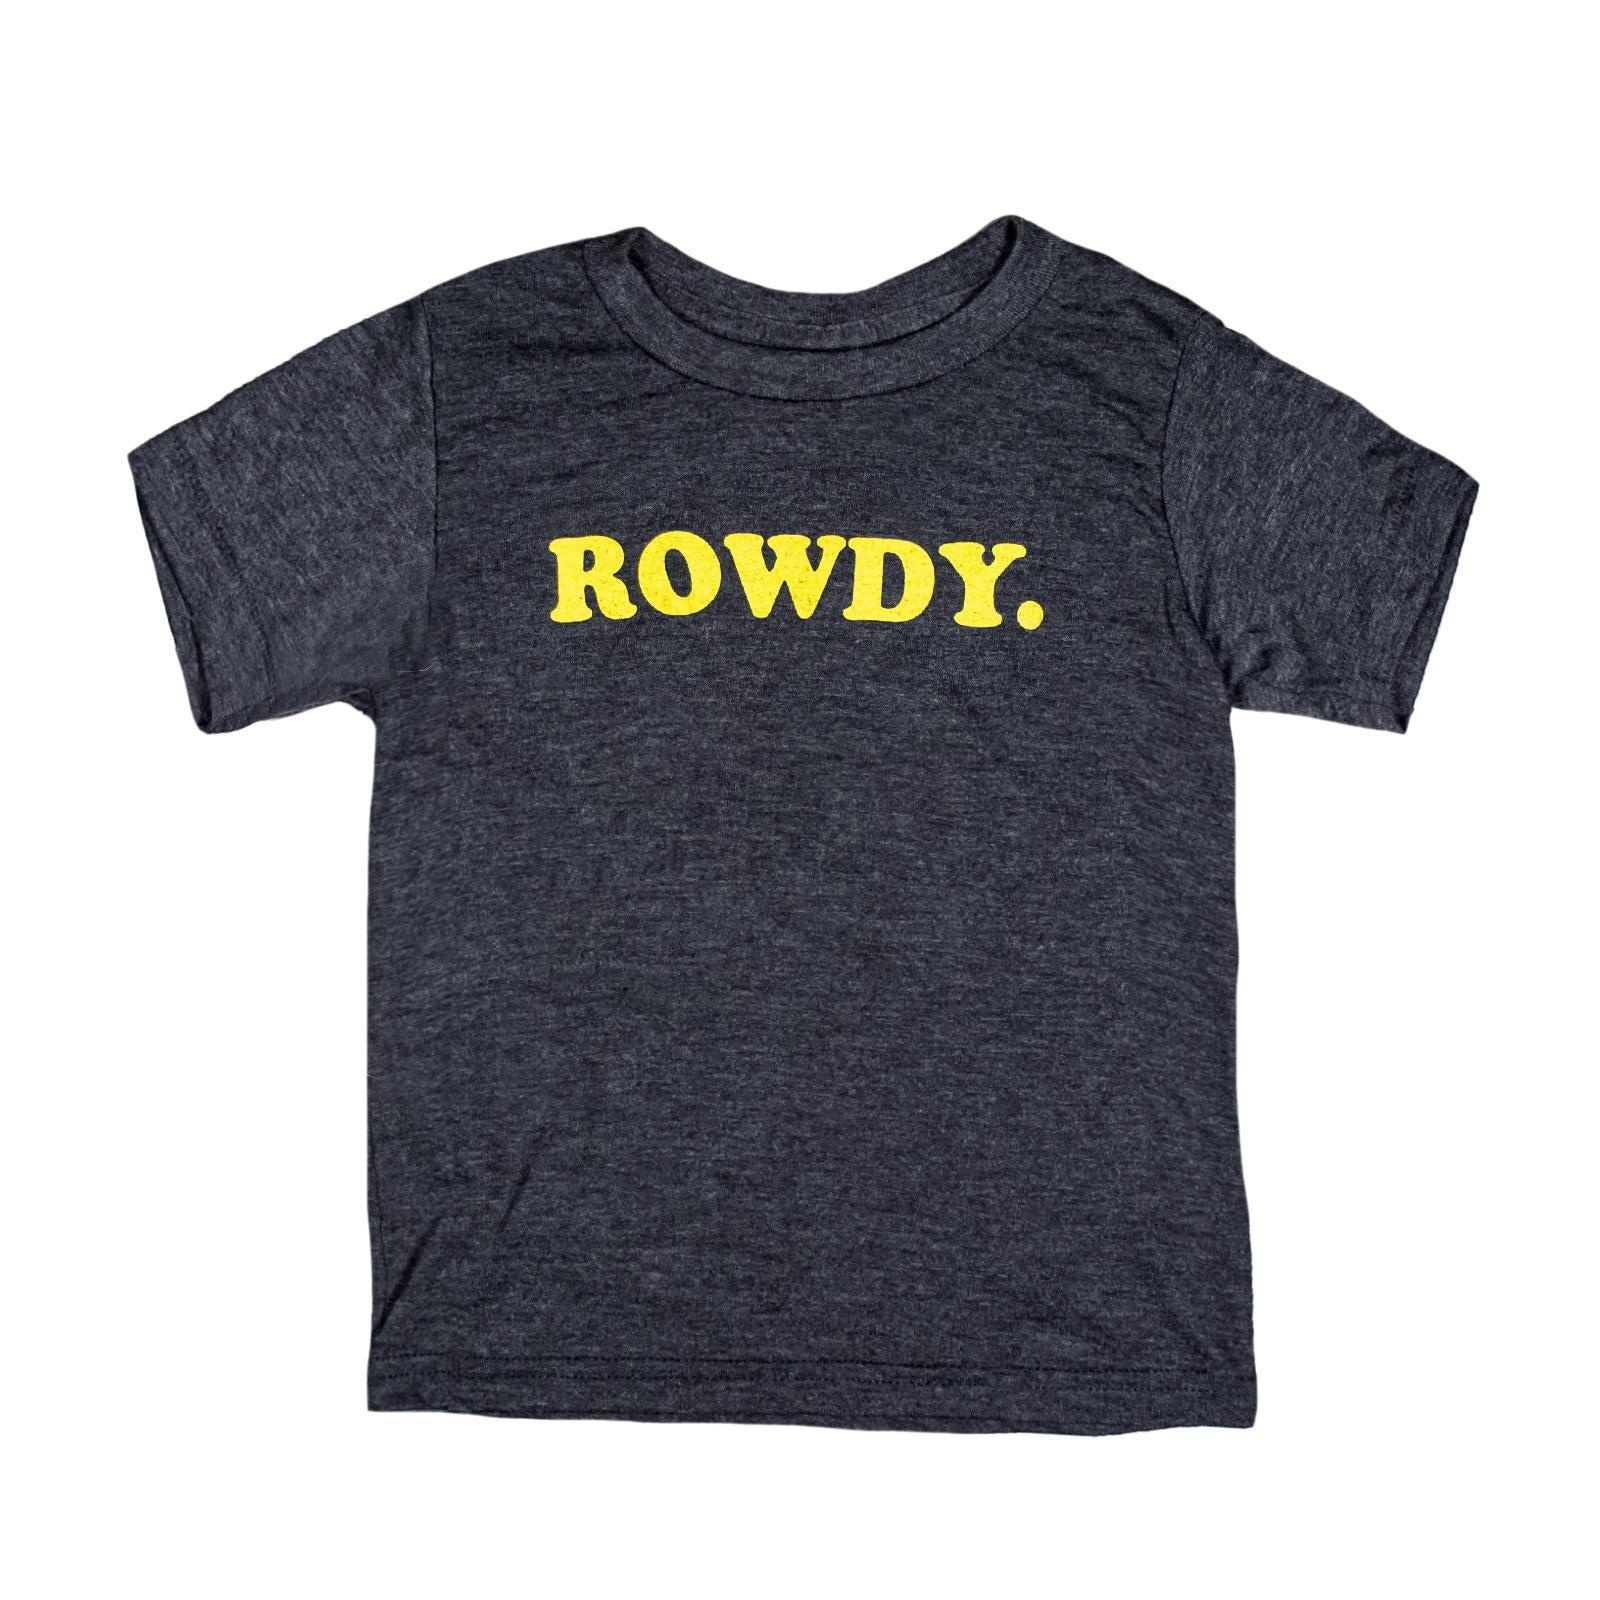 Rowdy Kids T-Shirt-Kids-KY for KY Store